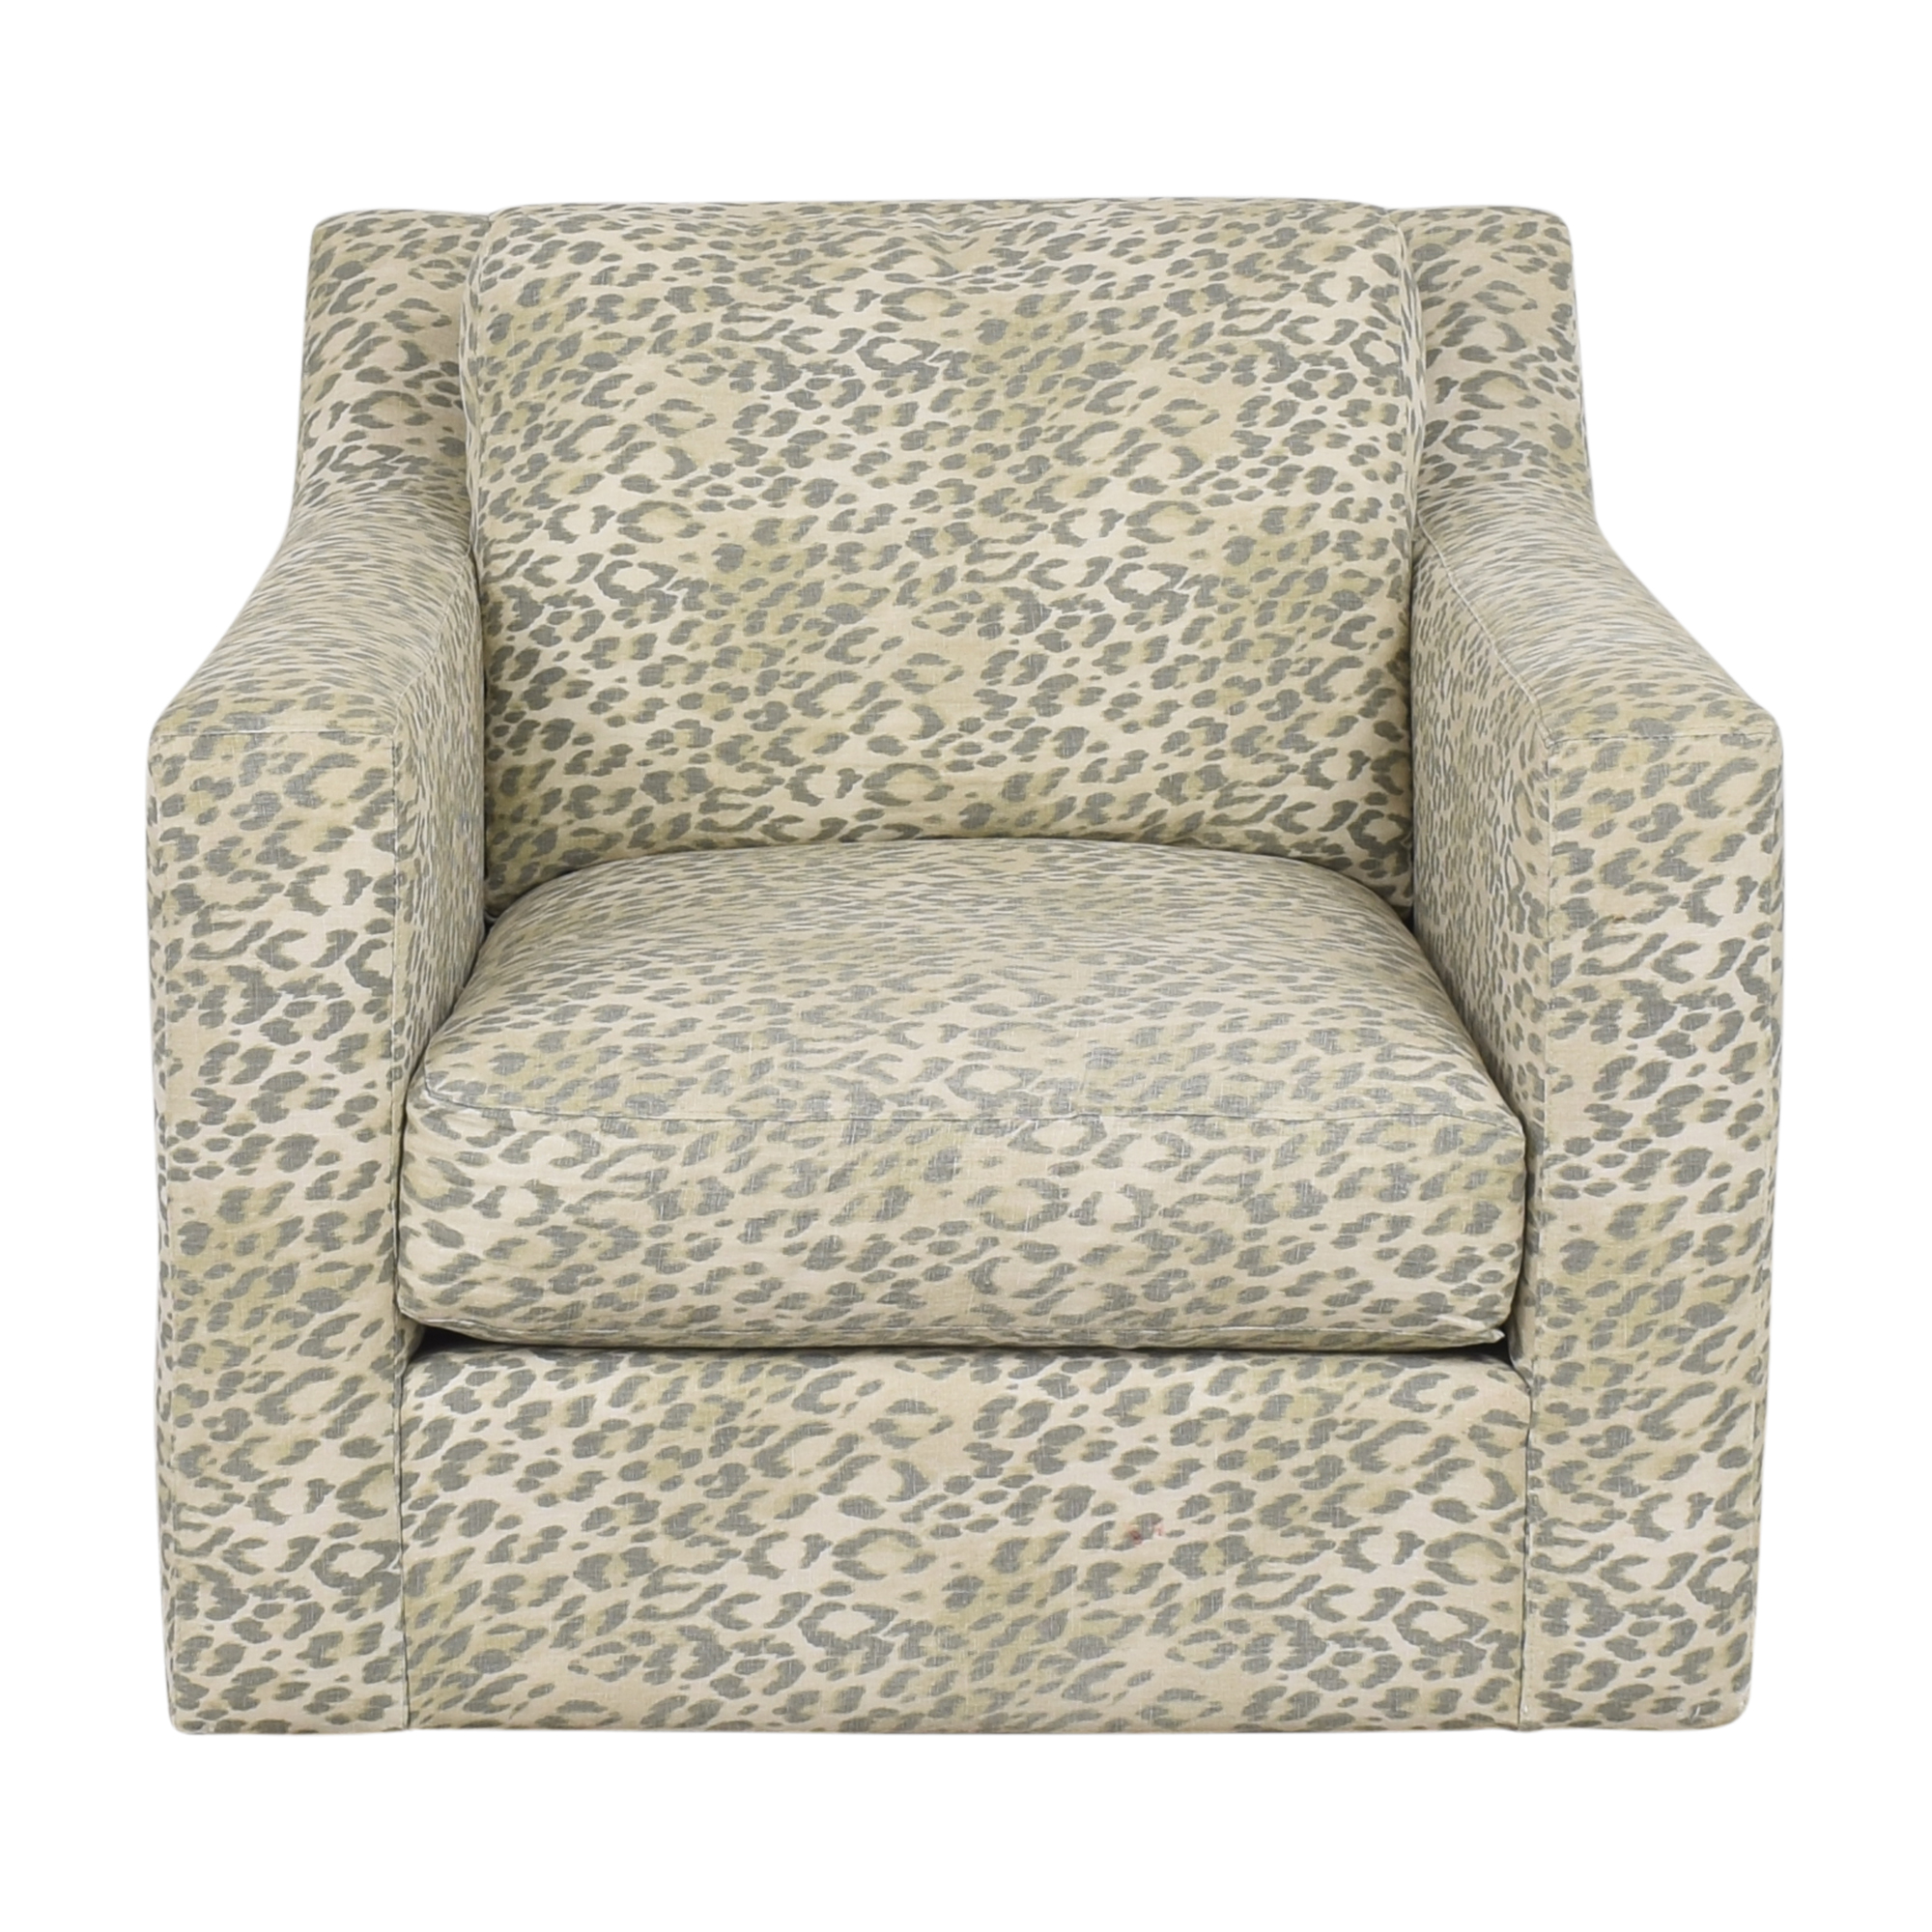 buy Lillian August Swivel Chair Lillian August Accent Chairs